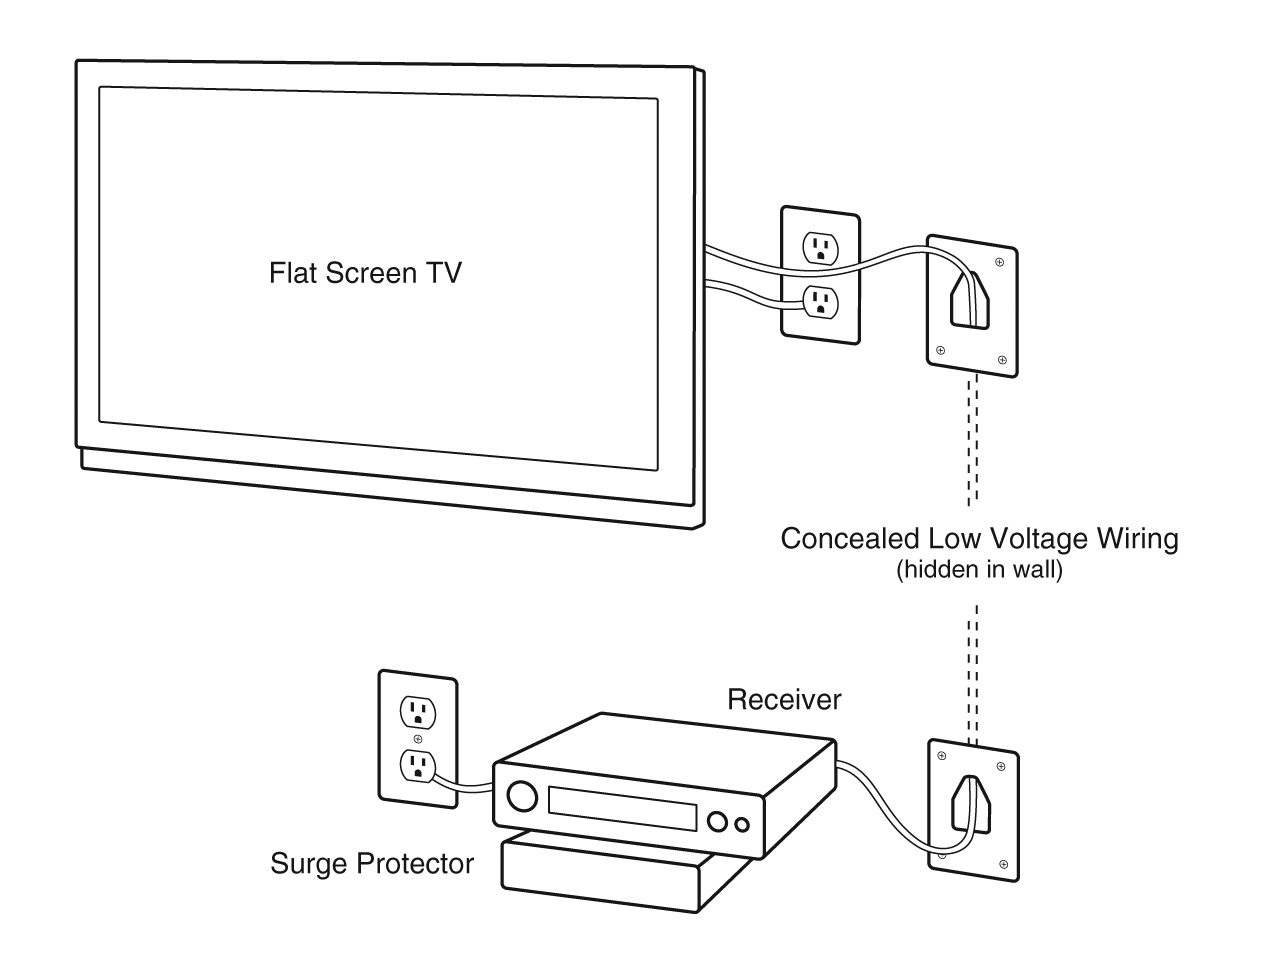 Tv In Wall Wiring Diagram - 2001 Mazda Fuse Box -  coded-03.yenpancane.jeanjaures37.fr | Tv In Wall Wiring Diagram |  | Wiring Diagram Resource